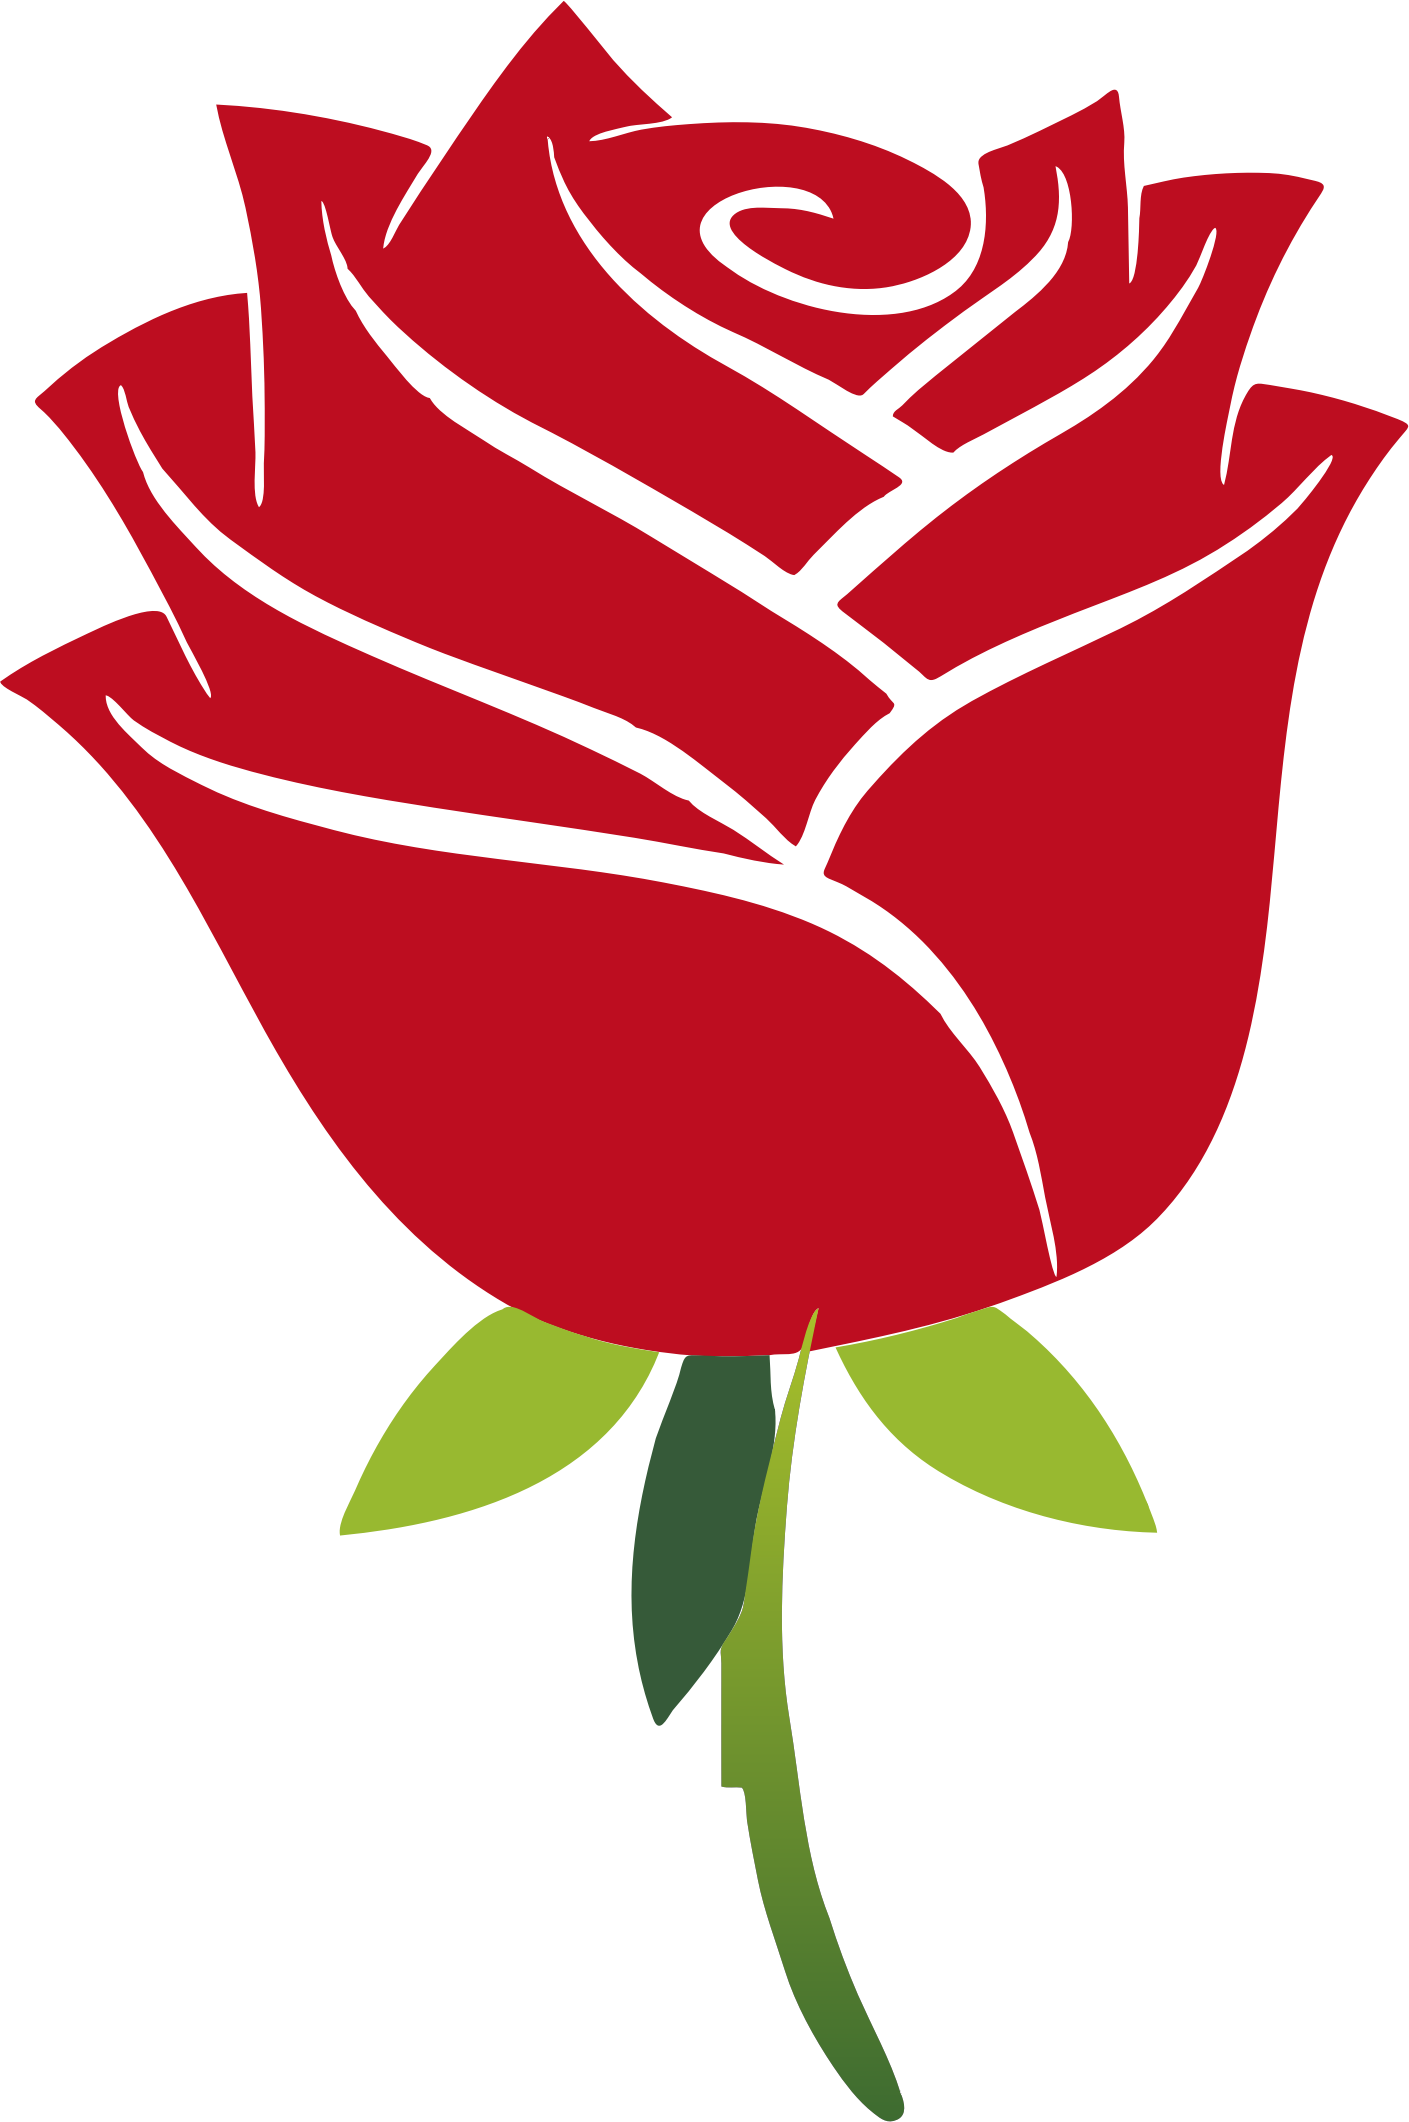 Clipart roses curved. Stylized rose no drop